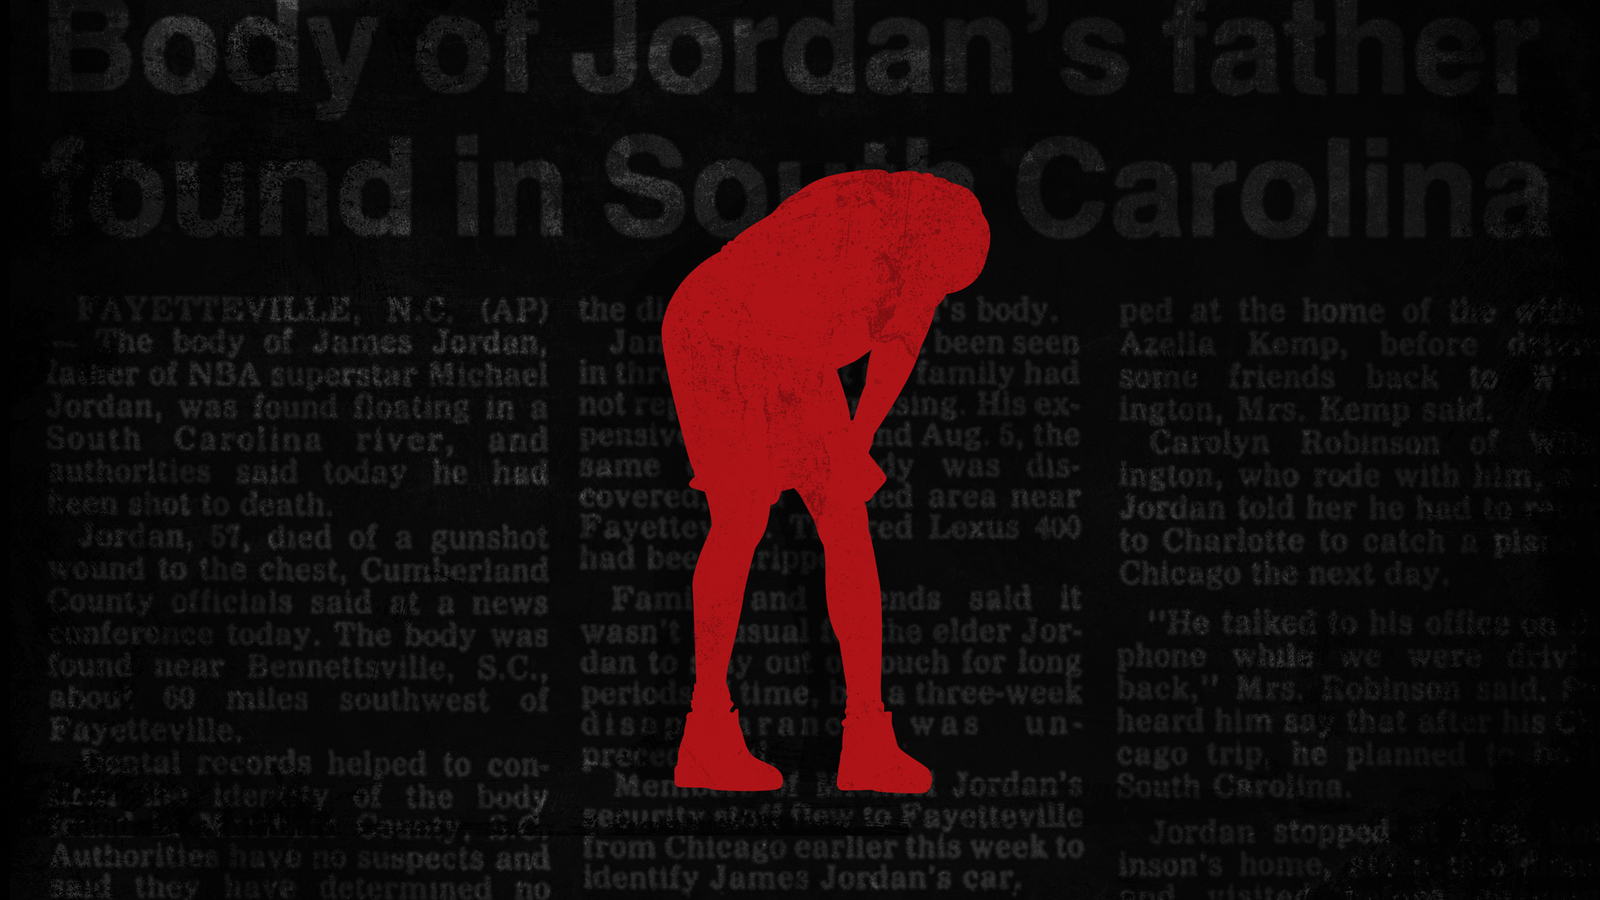 1e407247f3e21 The Suffering And Corruption That Produced James Jordan's Killers